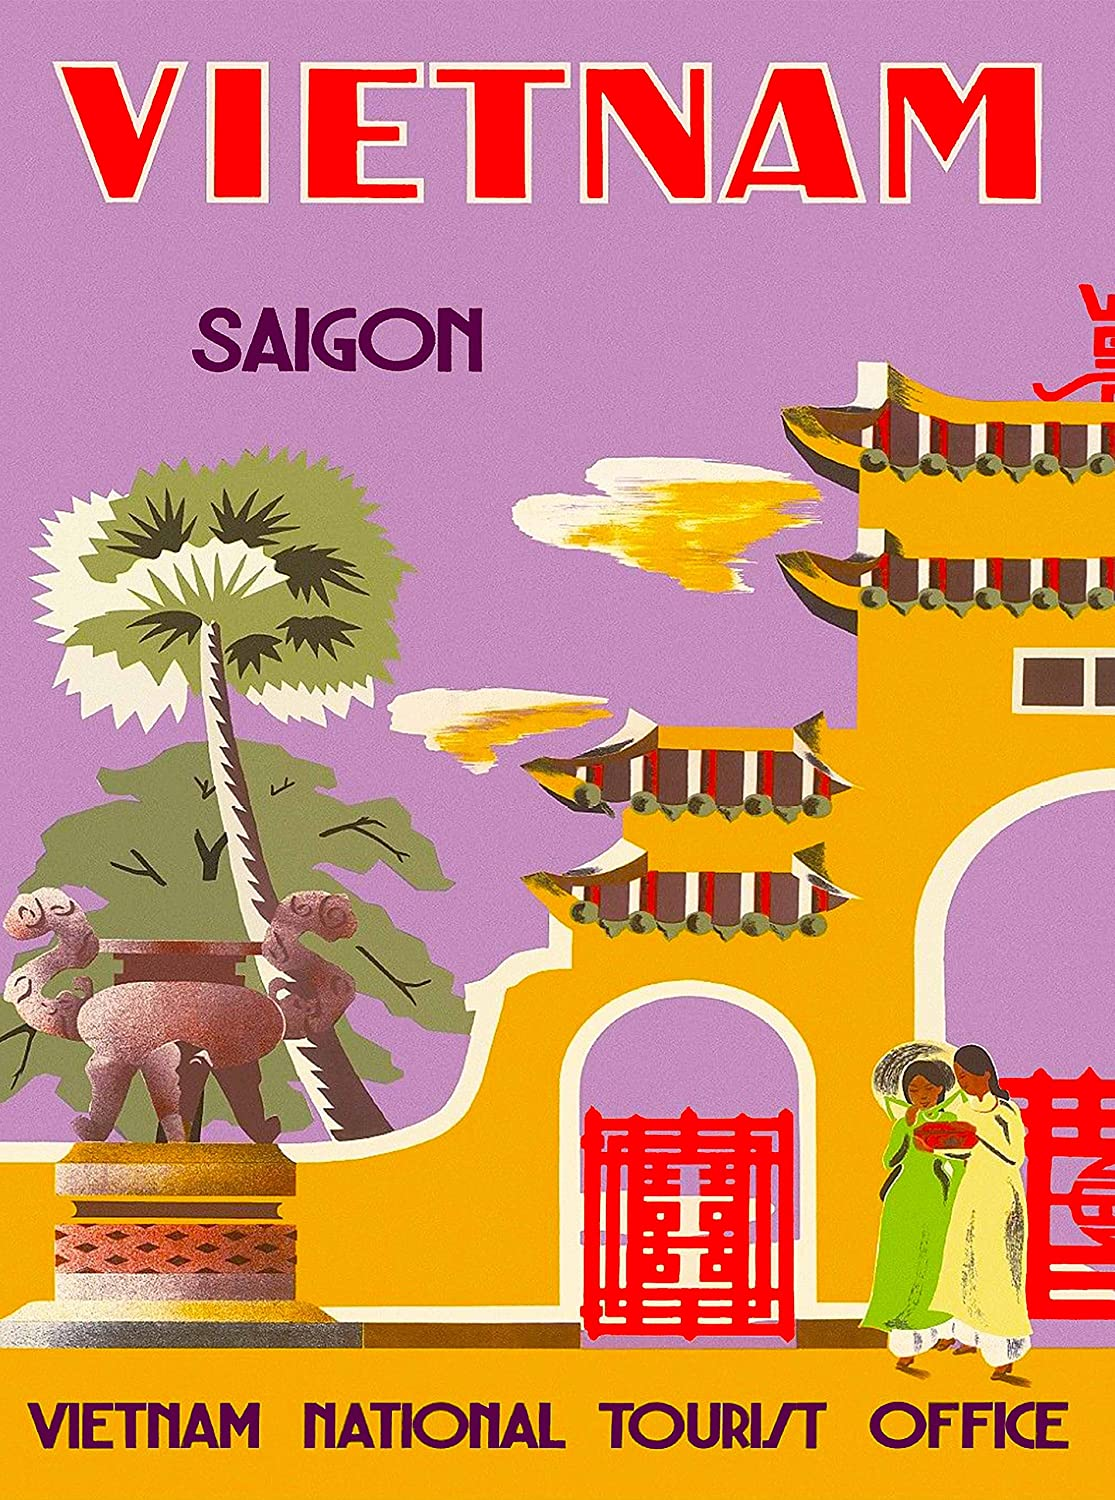 A SLICE IN TIME Vietnam - Saigon (Ho Chi Minh City) - Vietnam National Tourist Office - Vintage Travel Art Home Collectible Wall Decor Poster Print. 10 x 13.5 inches